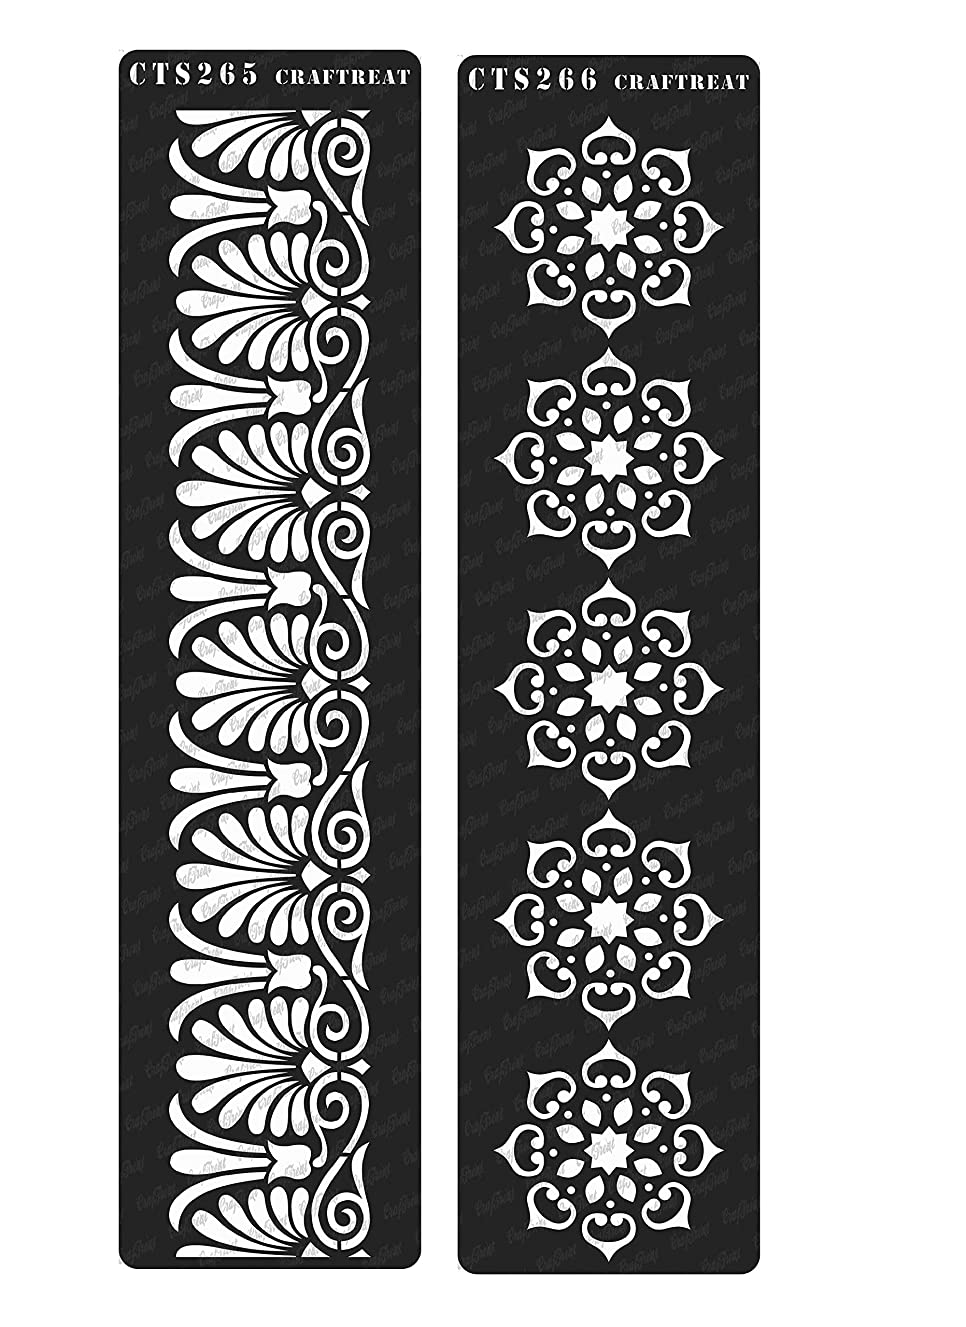 CrafTreat Stencil - Border 9 & 10 (2 pcs) | Reusable Painting Template for Home Decor, Crafting, DIY Albums and Printing on Paper, Floor, Wall, Tile, Fabric, Wood 3